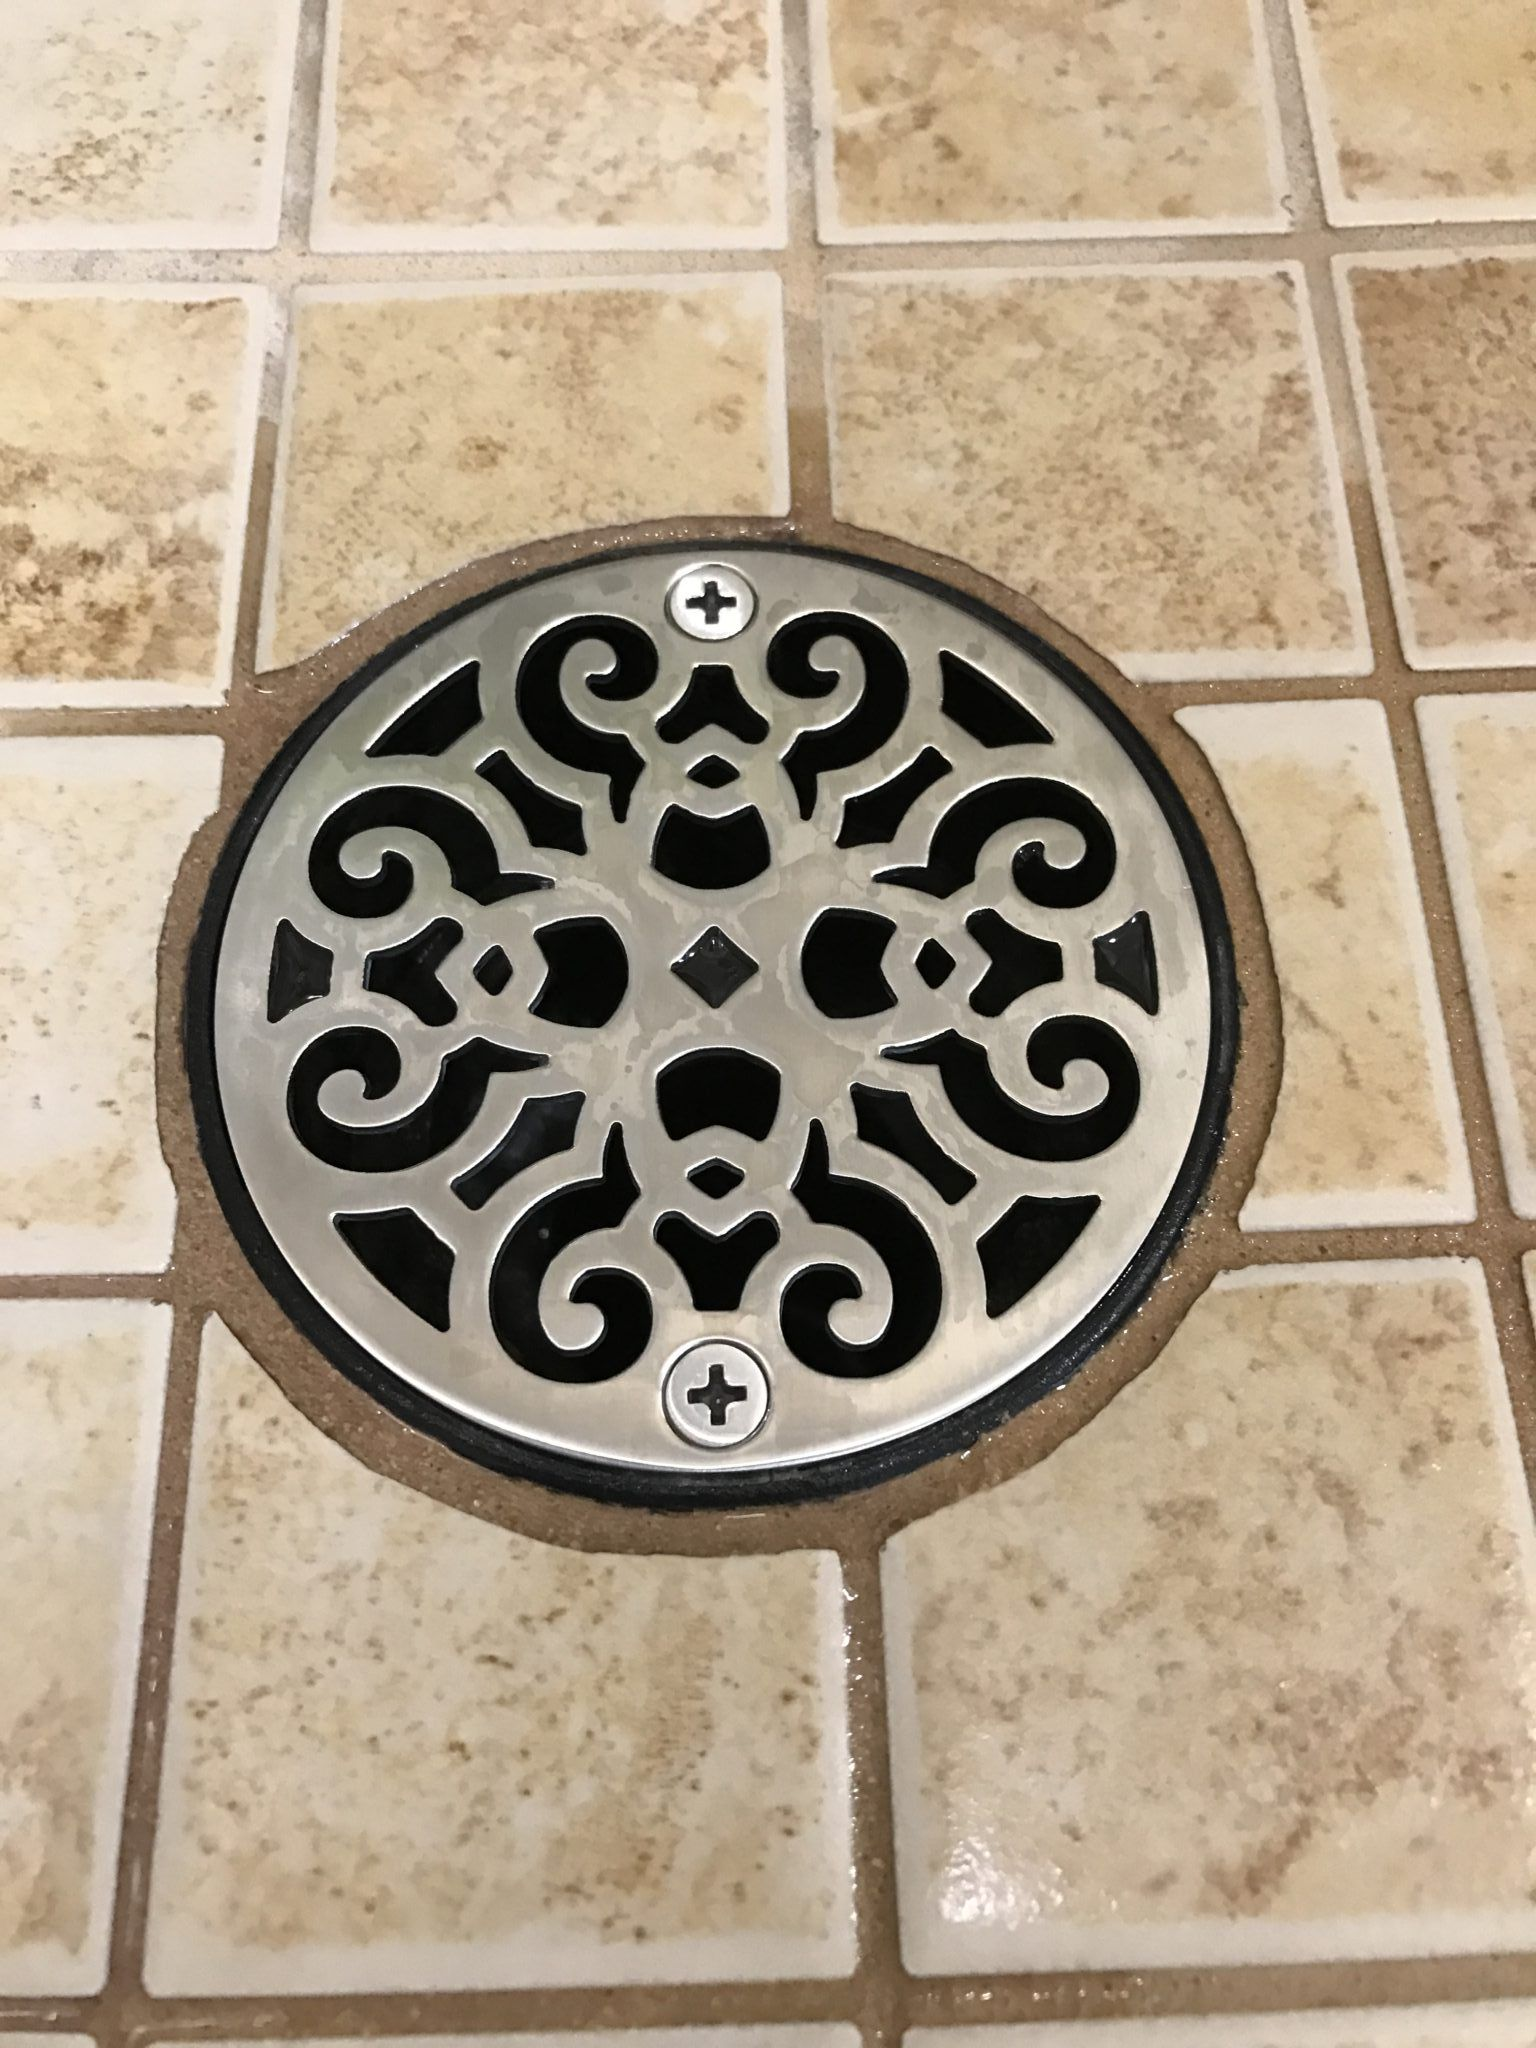 3 25 Inch Round Shower Drain Cover Classic Scrolls No 4